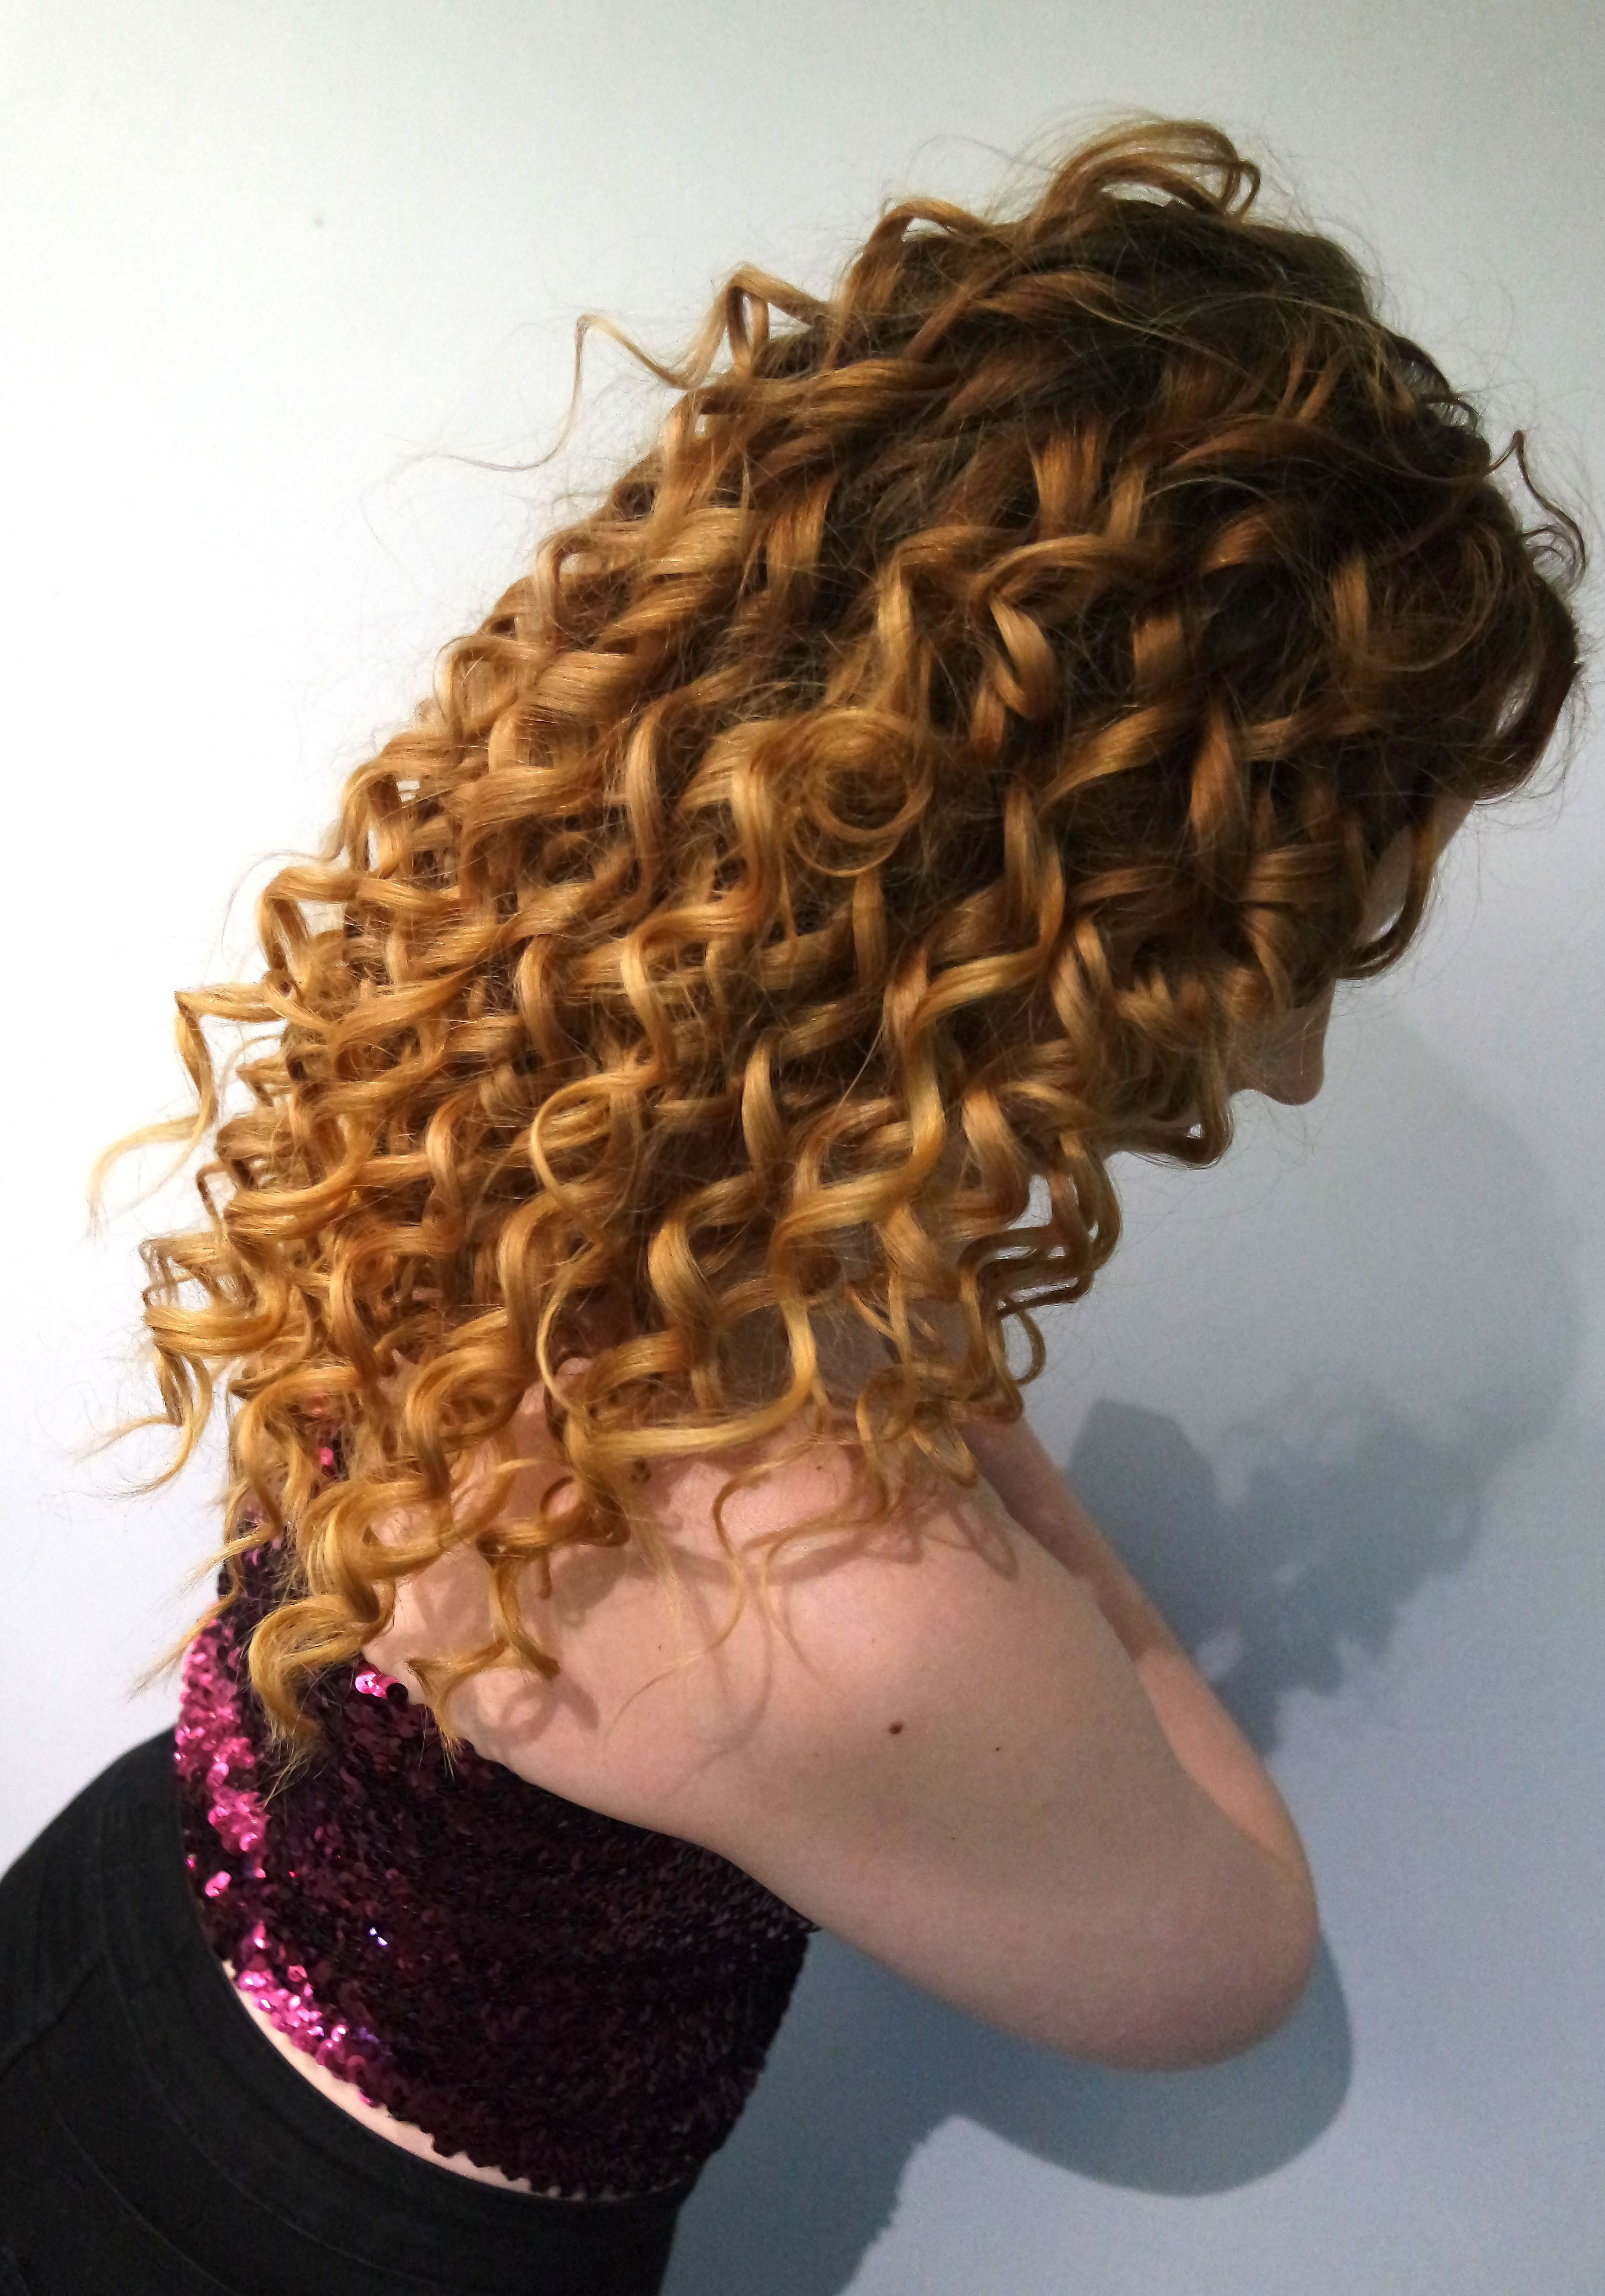 Curls for days by Jenna with model Tiffany ✂ ❤ curlyhair